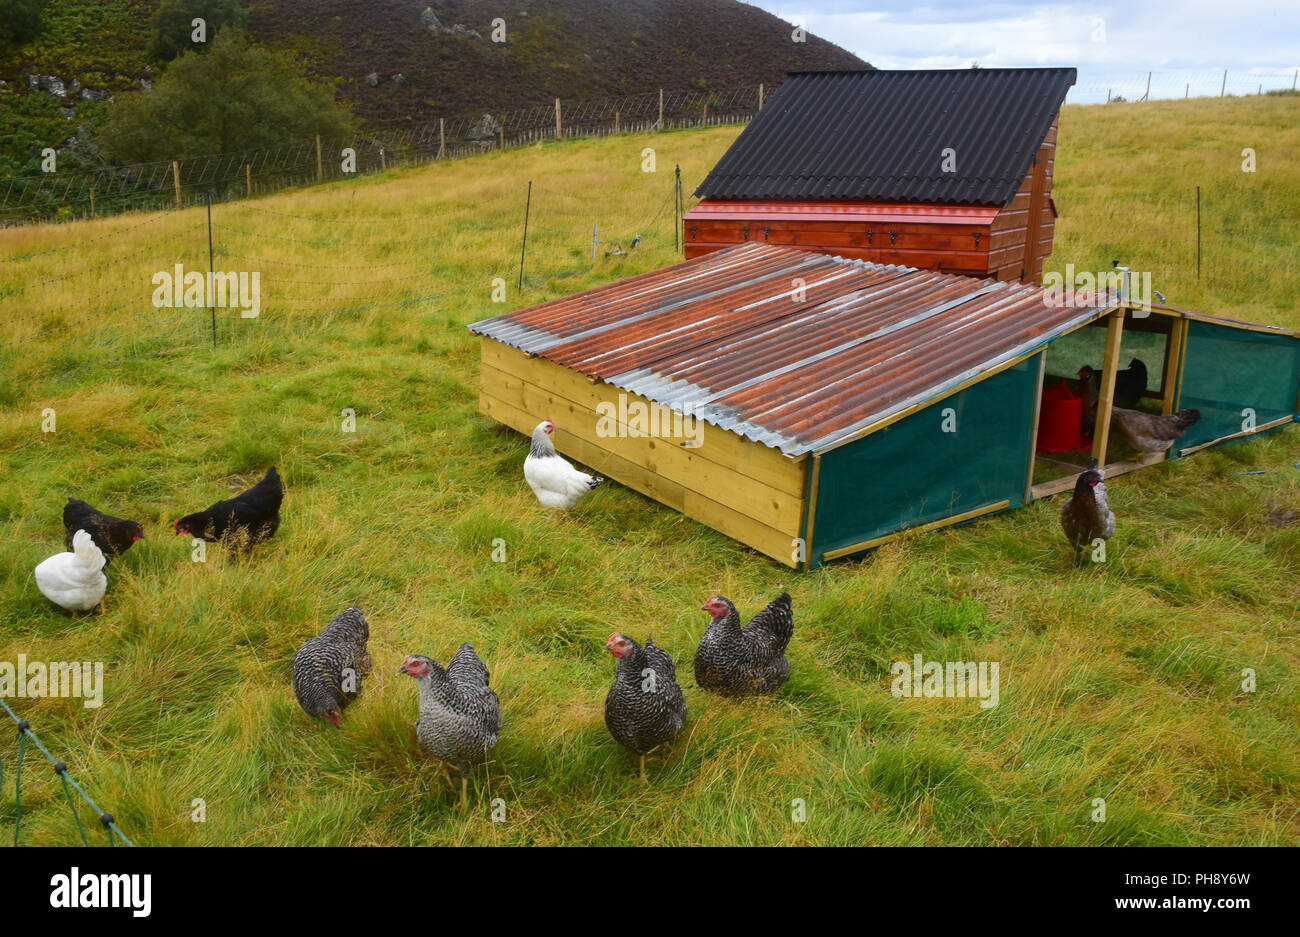 Free range eggs produced from a gathering of Marans and Leghorn Hens on this Hill farm croft in Strathspey in the Scottish Highlands. Stock Photo